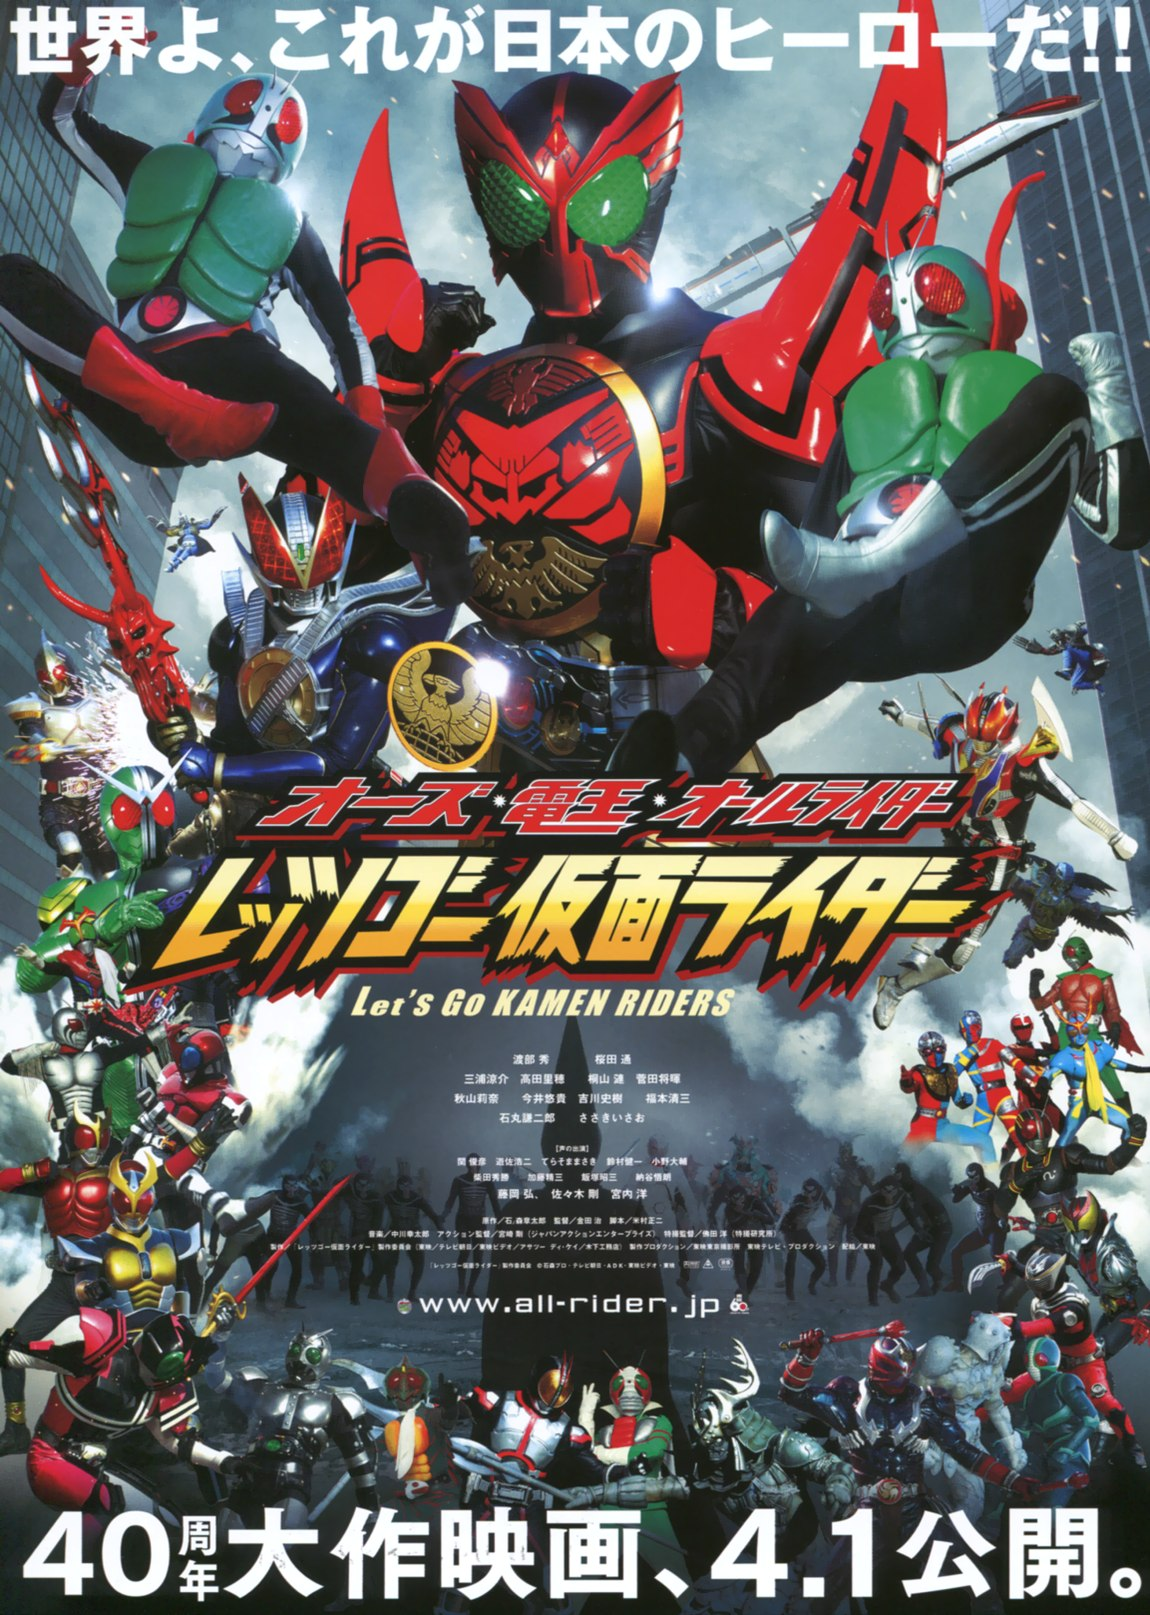 https://static.wikia.nocookie.net/kamenrider/images/5/5d/Let%27s_go_kamen_riders.jpg/revision/latest?cb=20141116051128